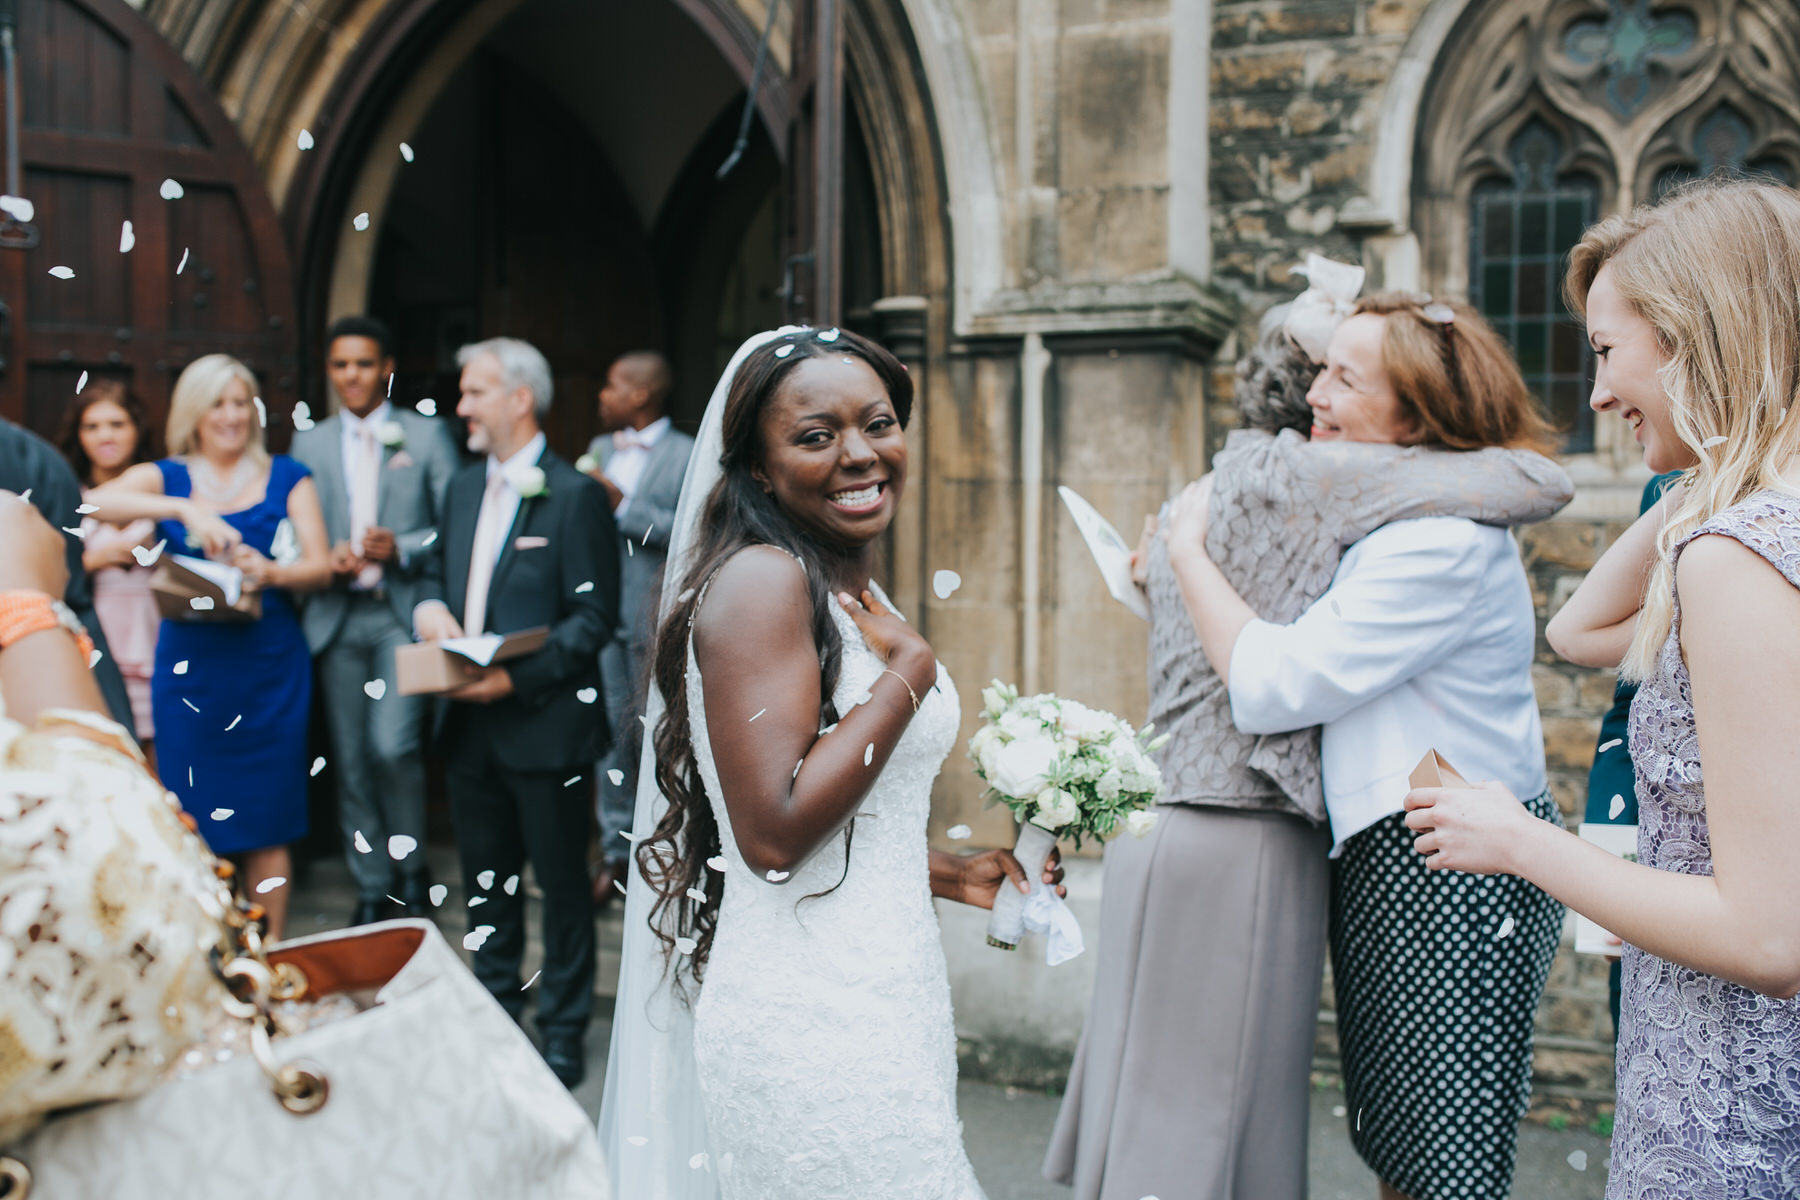 102 confetti floating over bride reaction photo.jpg